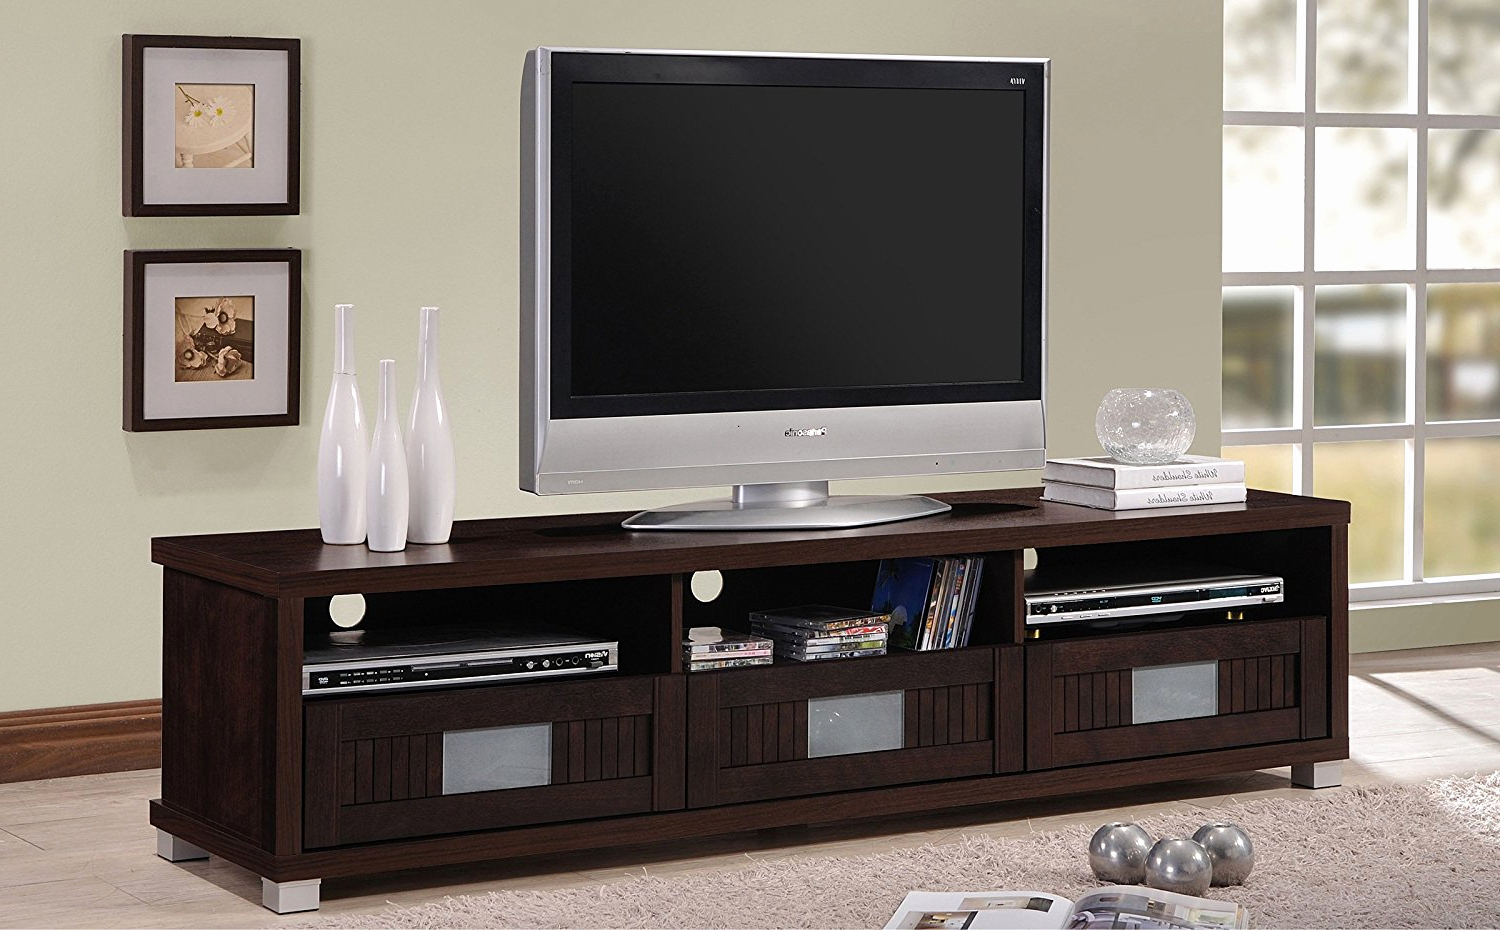 Low Media Console Furniture Extra Long Cabinet Profile 90 Inch Wide Within Widely Used Extra Long Tv Stands (View 7 of 20)